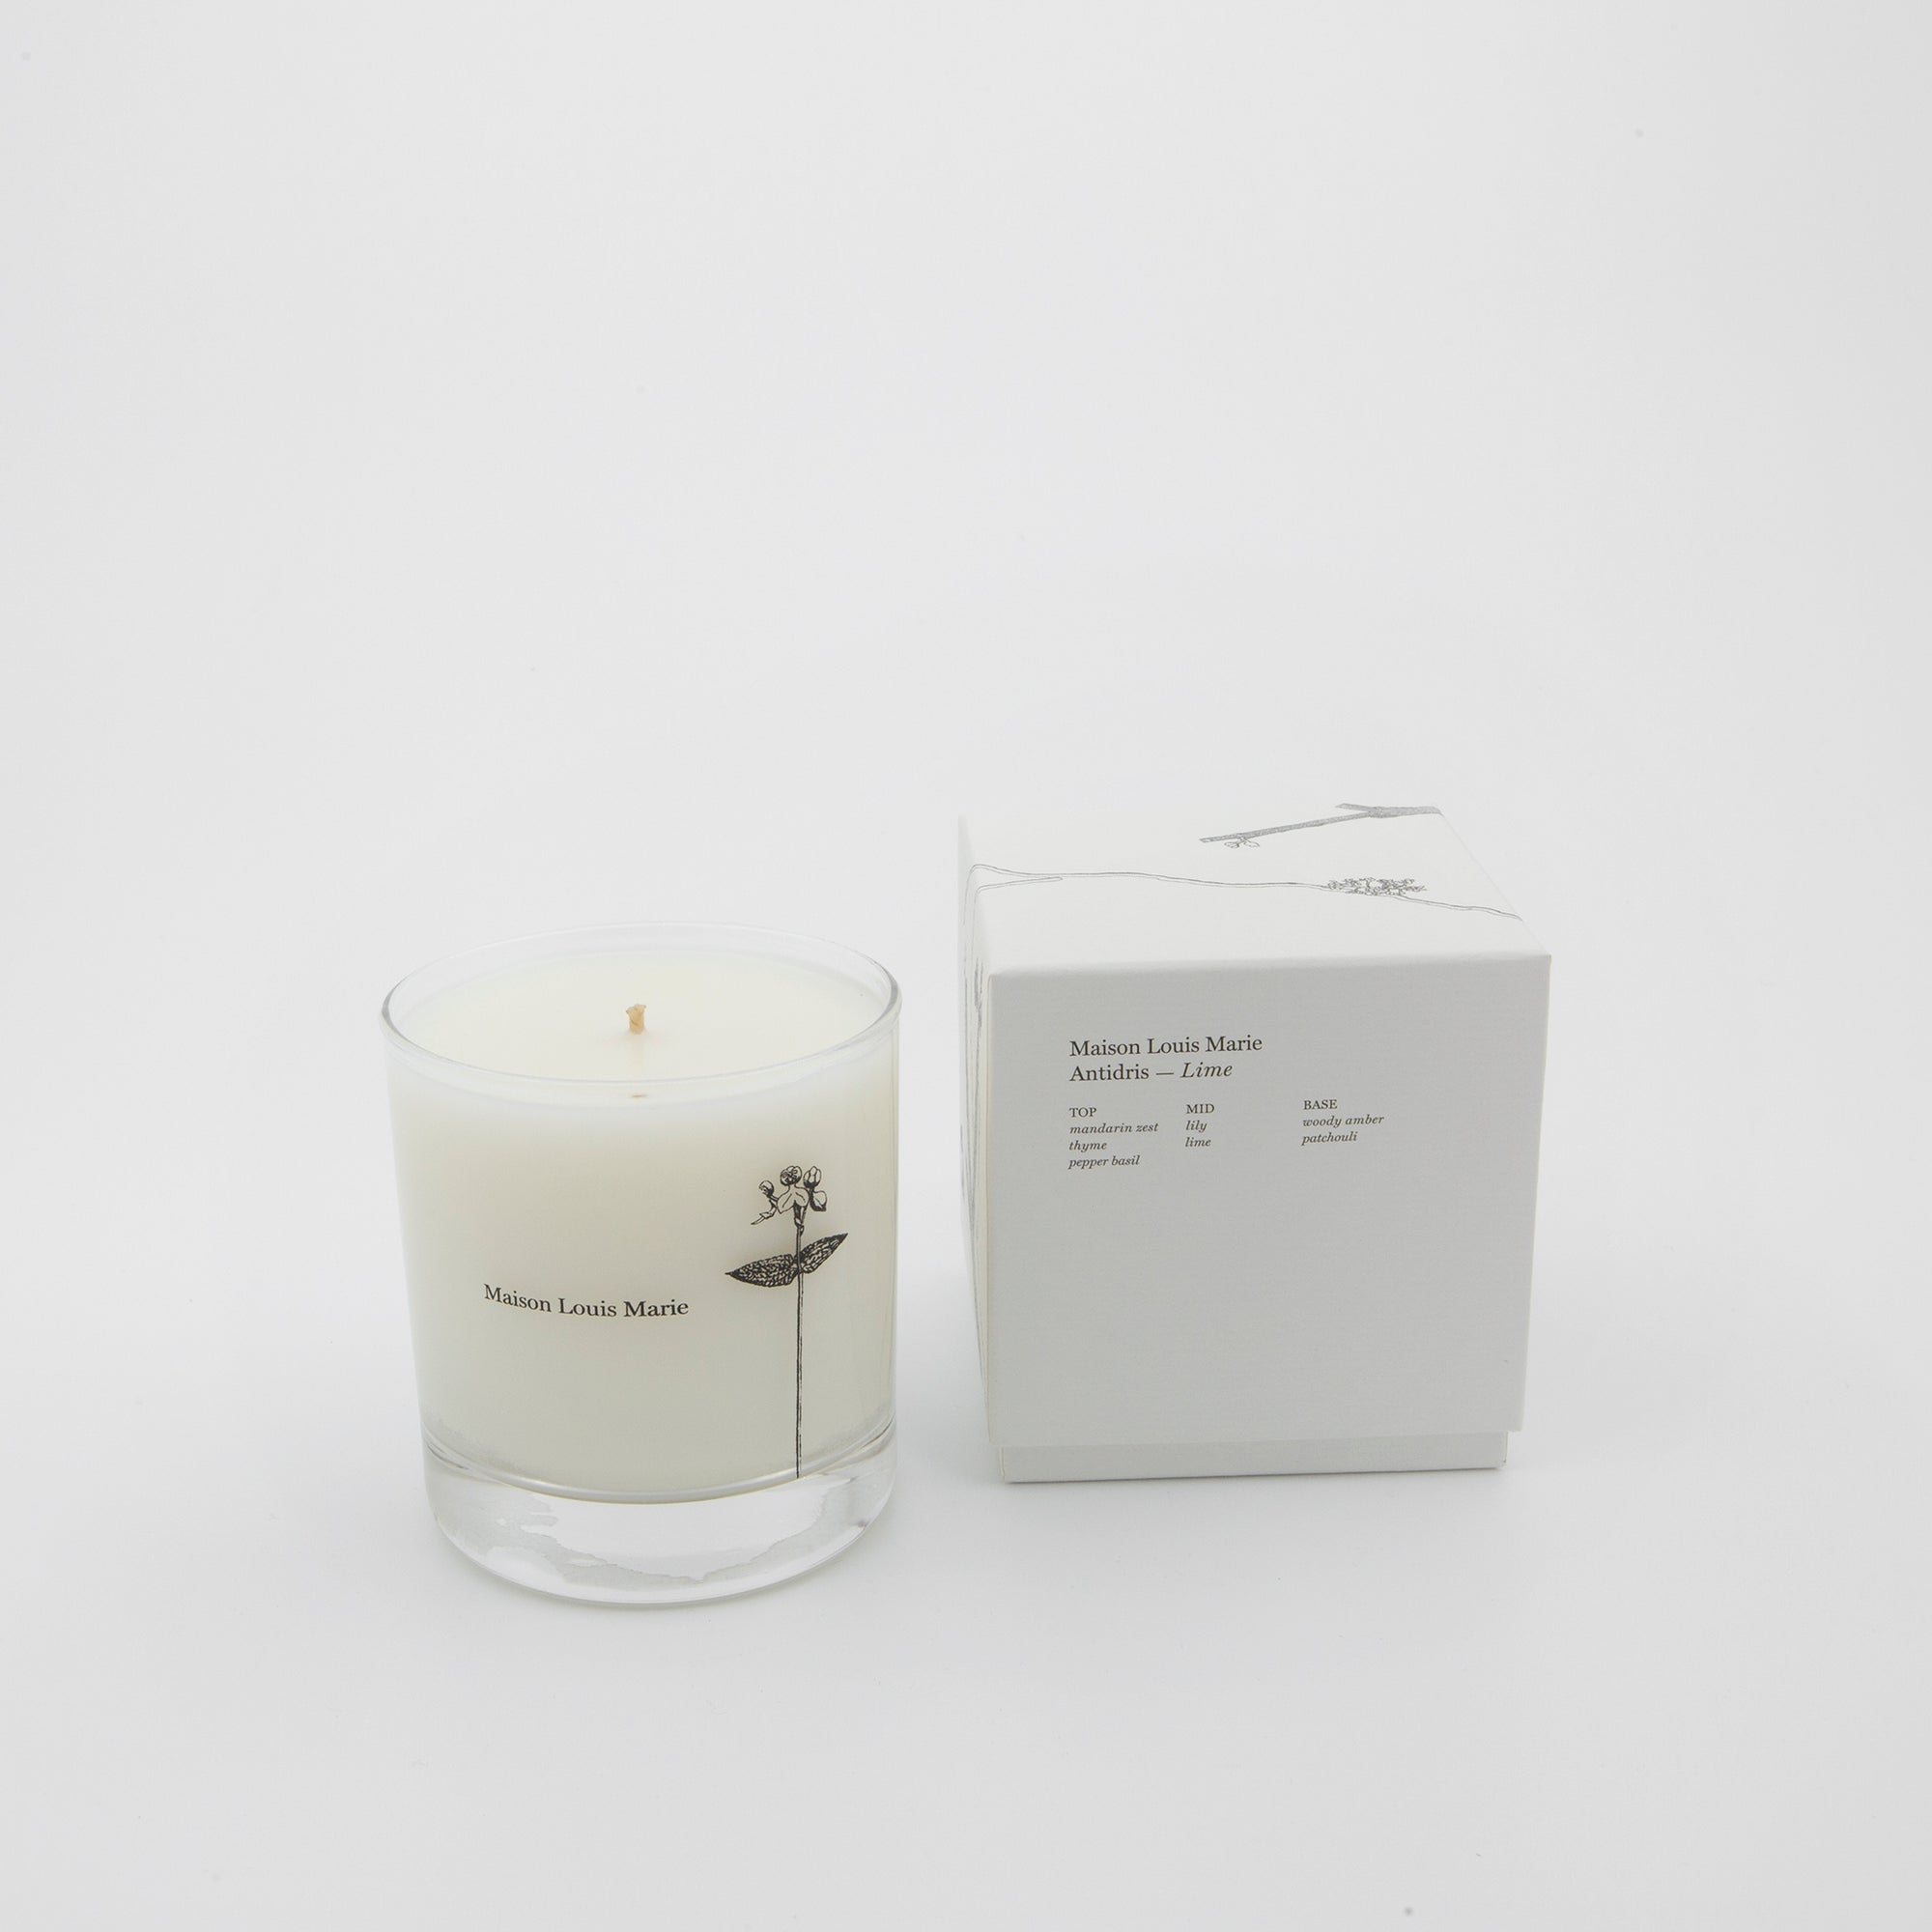 Antidris - Lime Candle